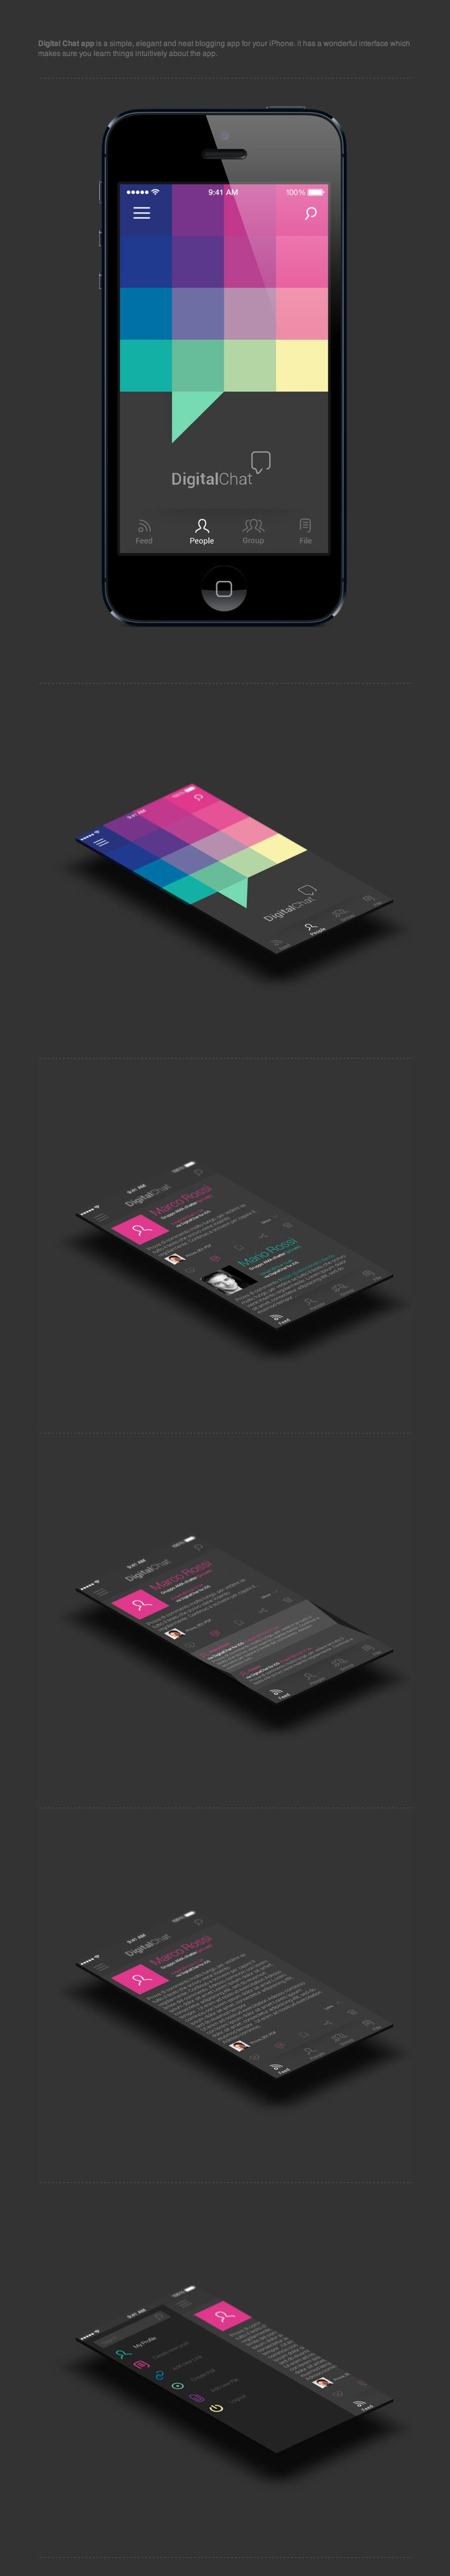 Digital Chat Mobile App User Interface Design